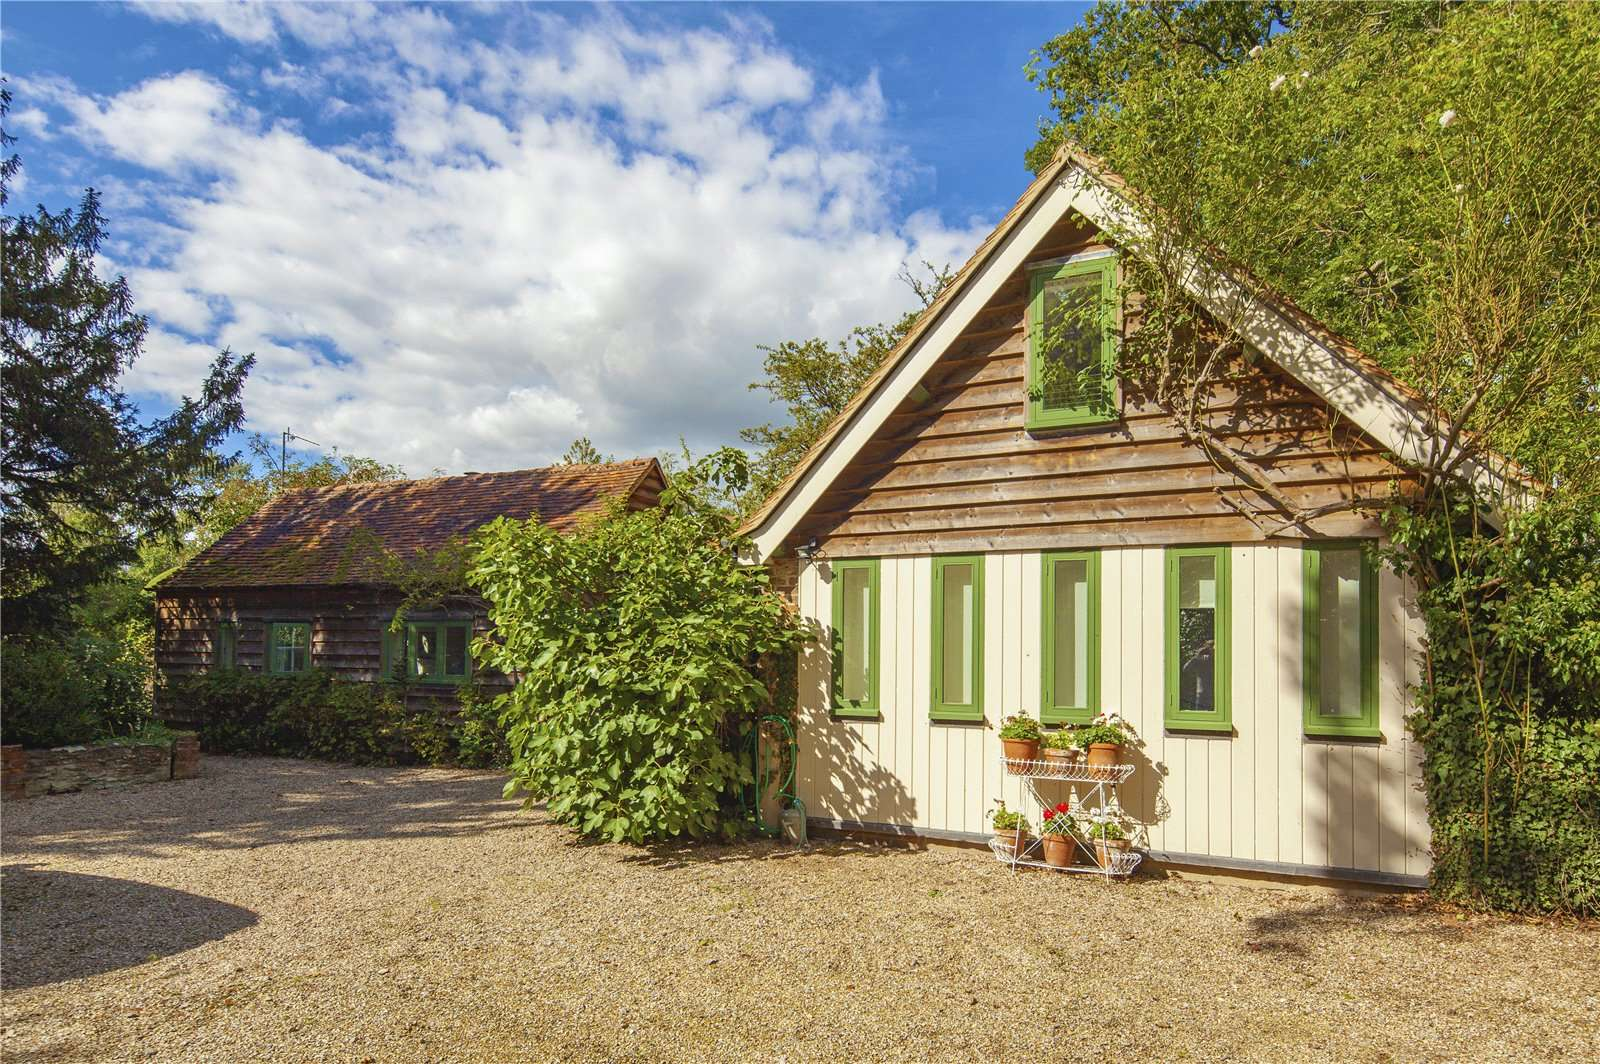 Beauforest House, Wallingford - Image Gallery 17 - The Cottage